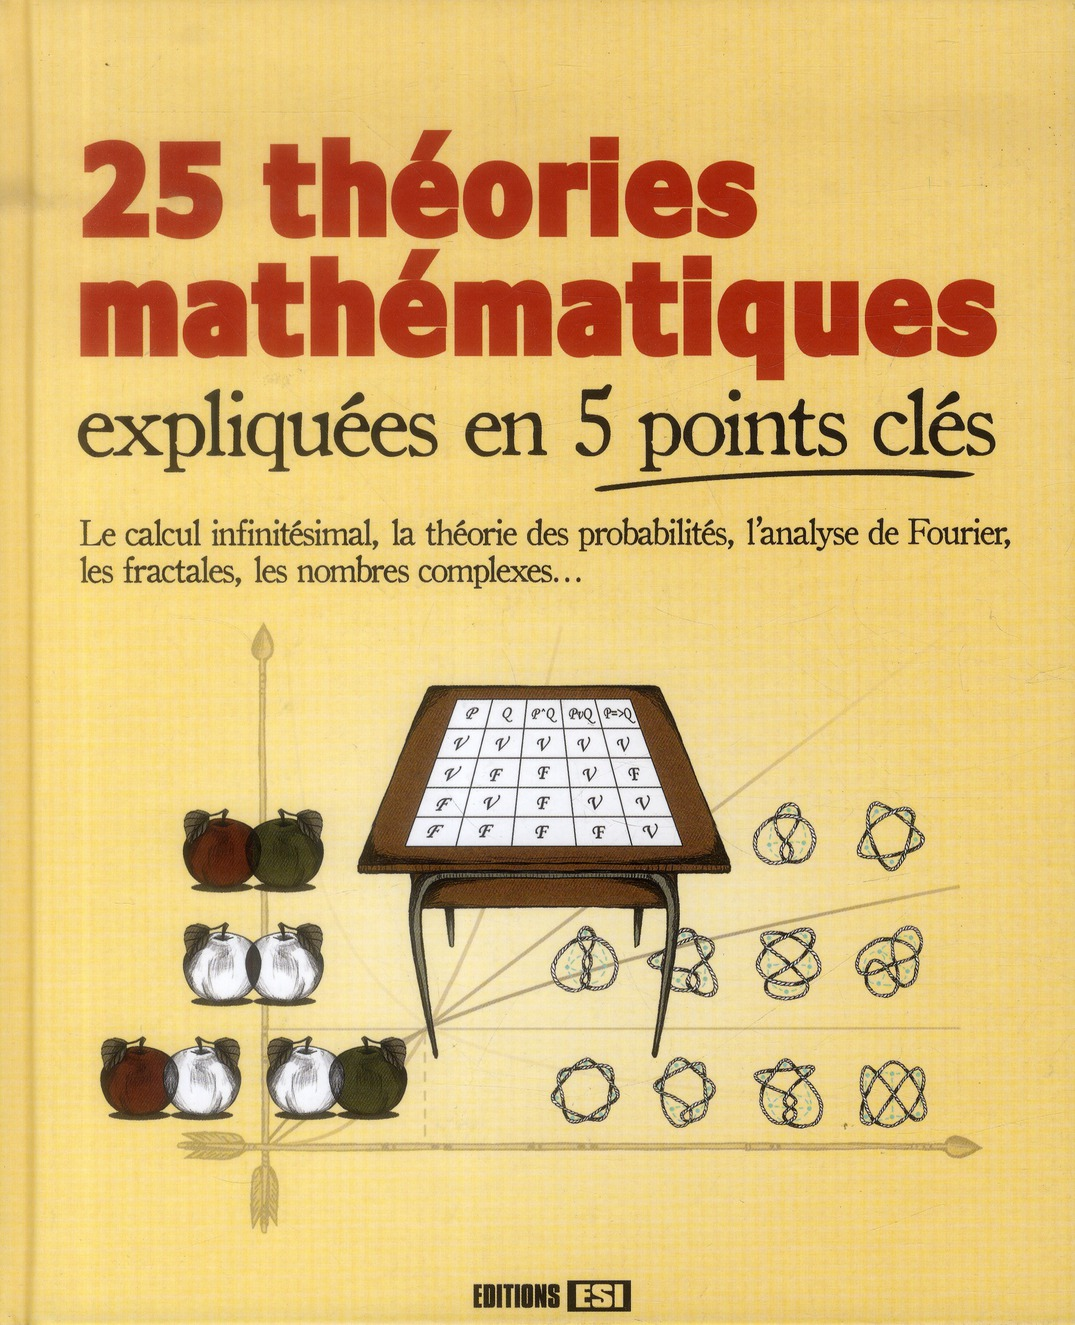 25 THEORIES MATHEMATIQUES EXPLIQUEES EN 5 POINTS CLES